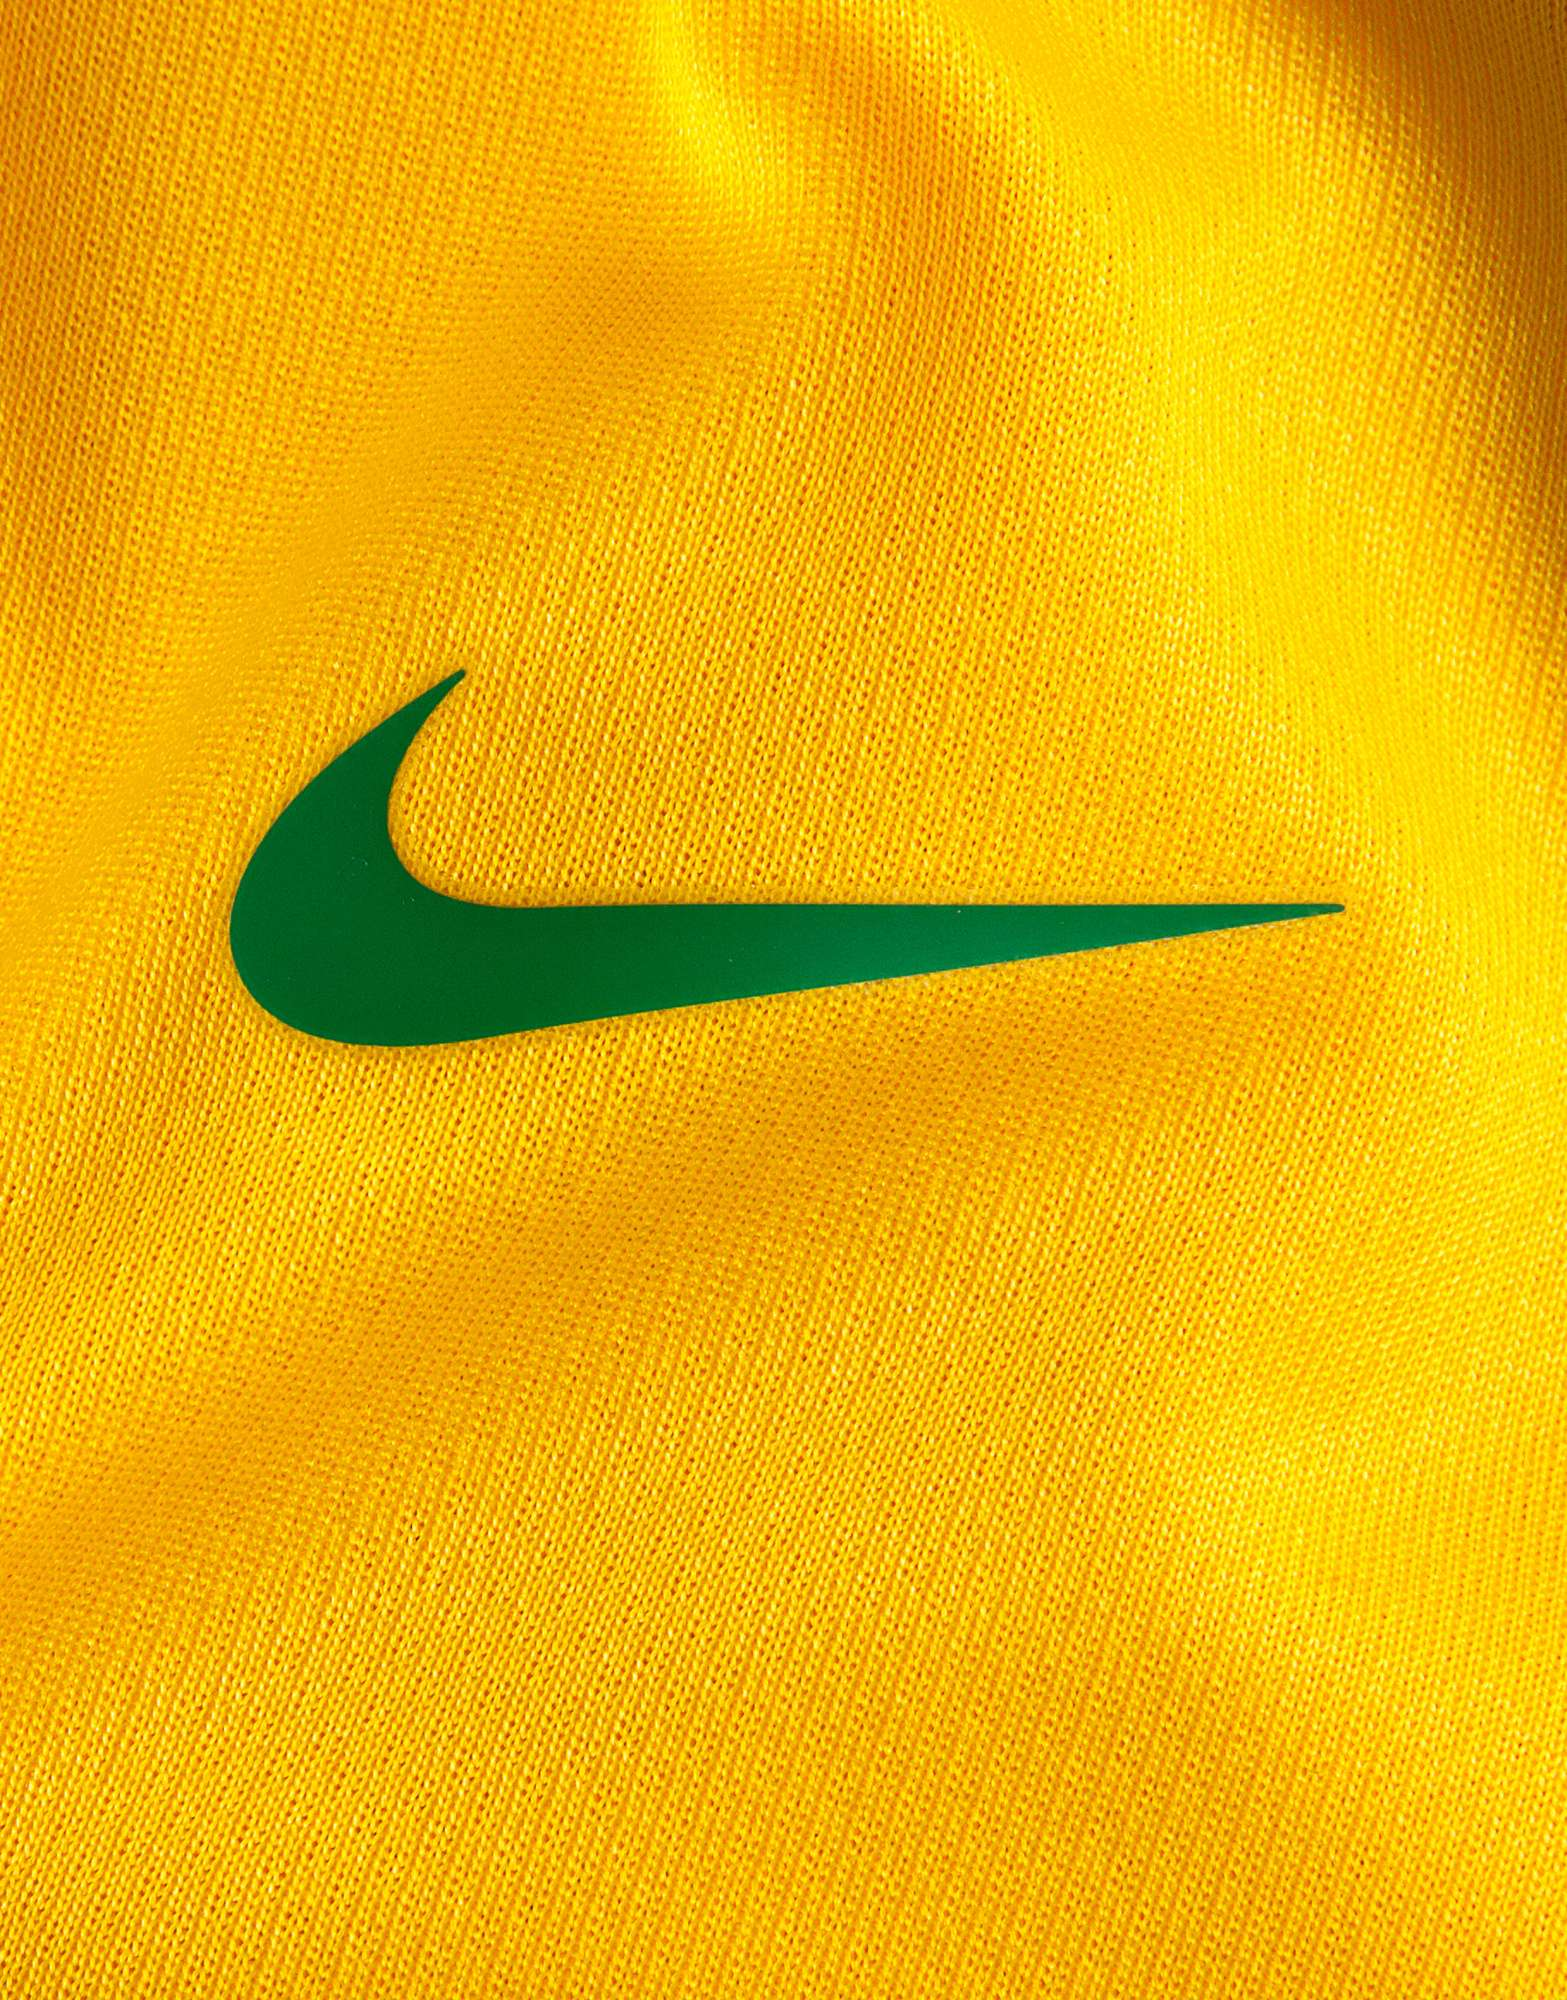 nike in brazil a host country In june 2014, brazil was all set to host the 20th fifa world cup  for a sporting  giant like nike, which was the official kit maker for 10 participating countries.